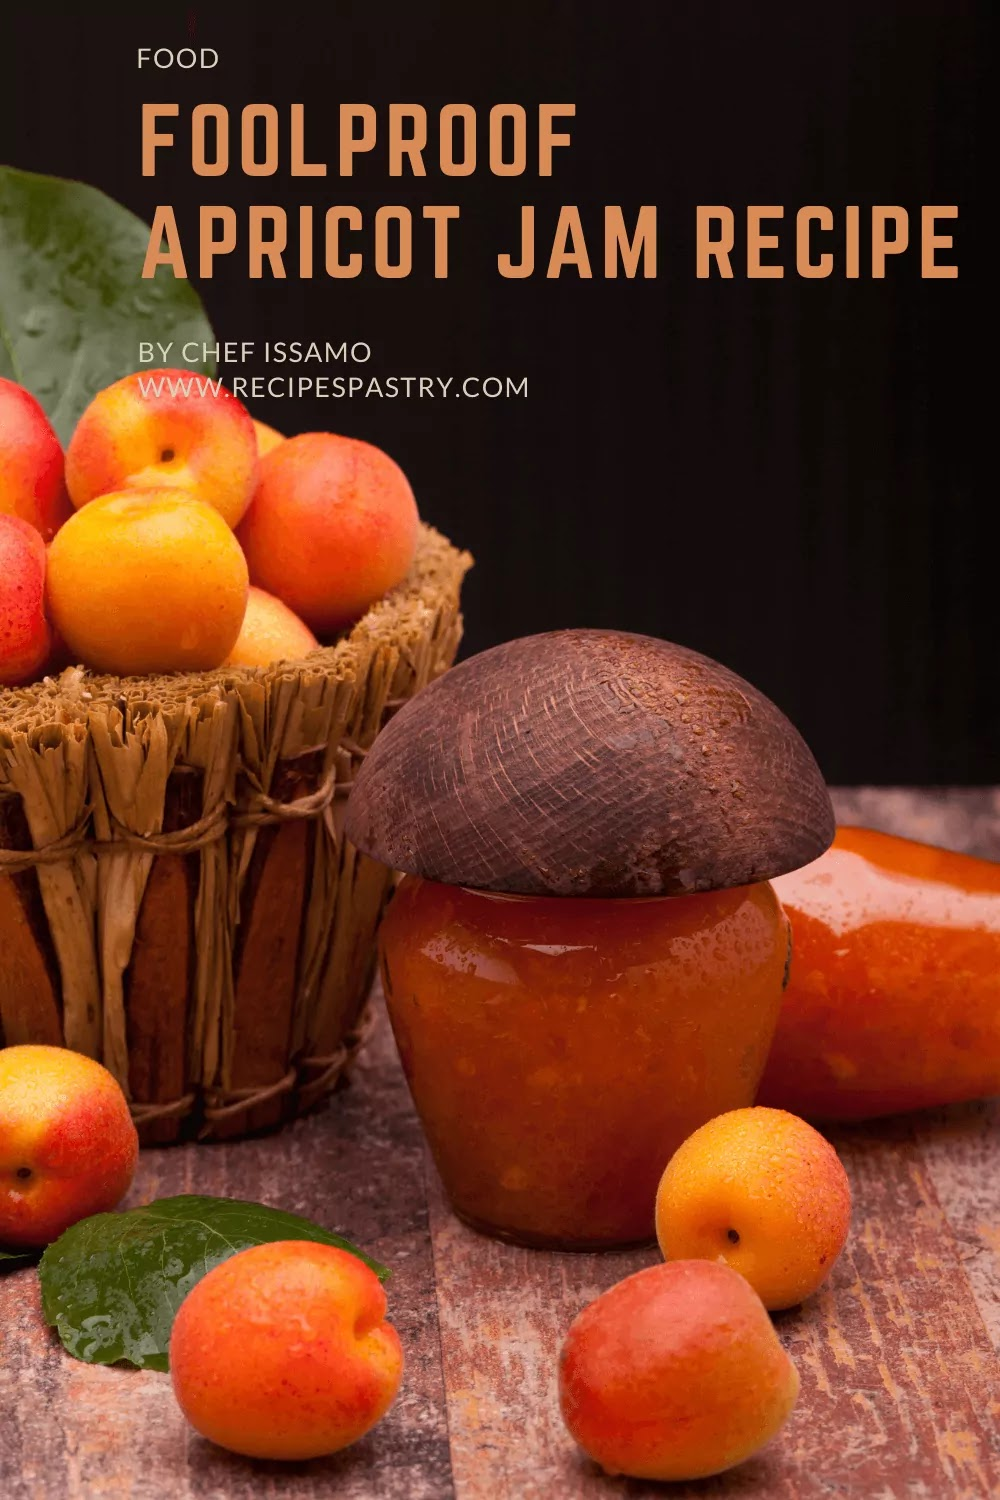 A jam box and a basket containing the apricots